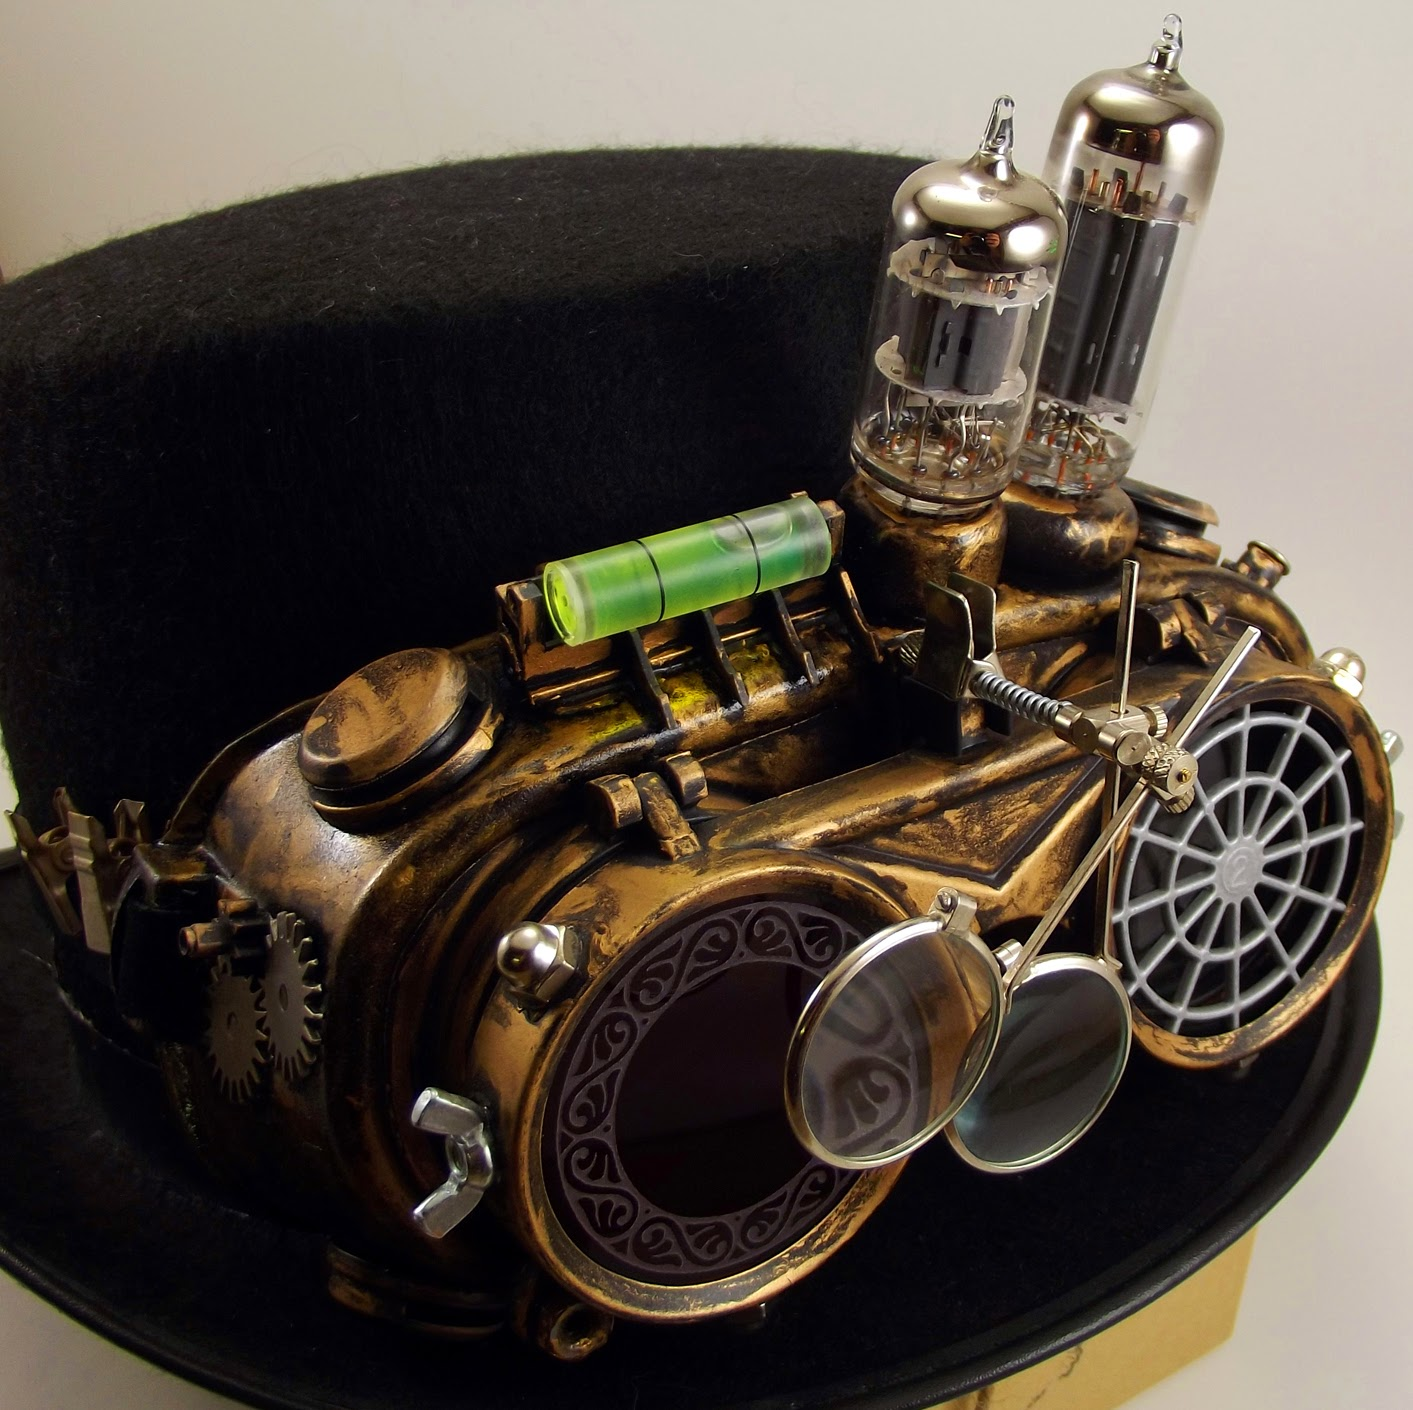 Vermont Dead Line: AND NOW FOR STEAMPUNK COMPLETELY DIFFERENT  Vermont Dead Li...